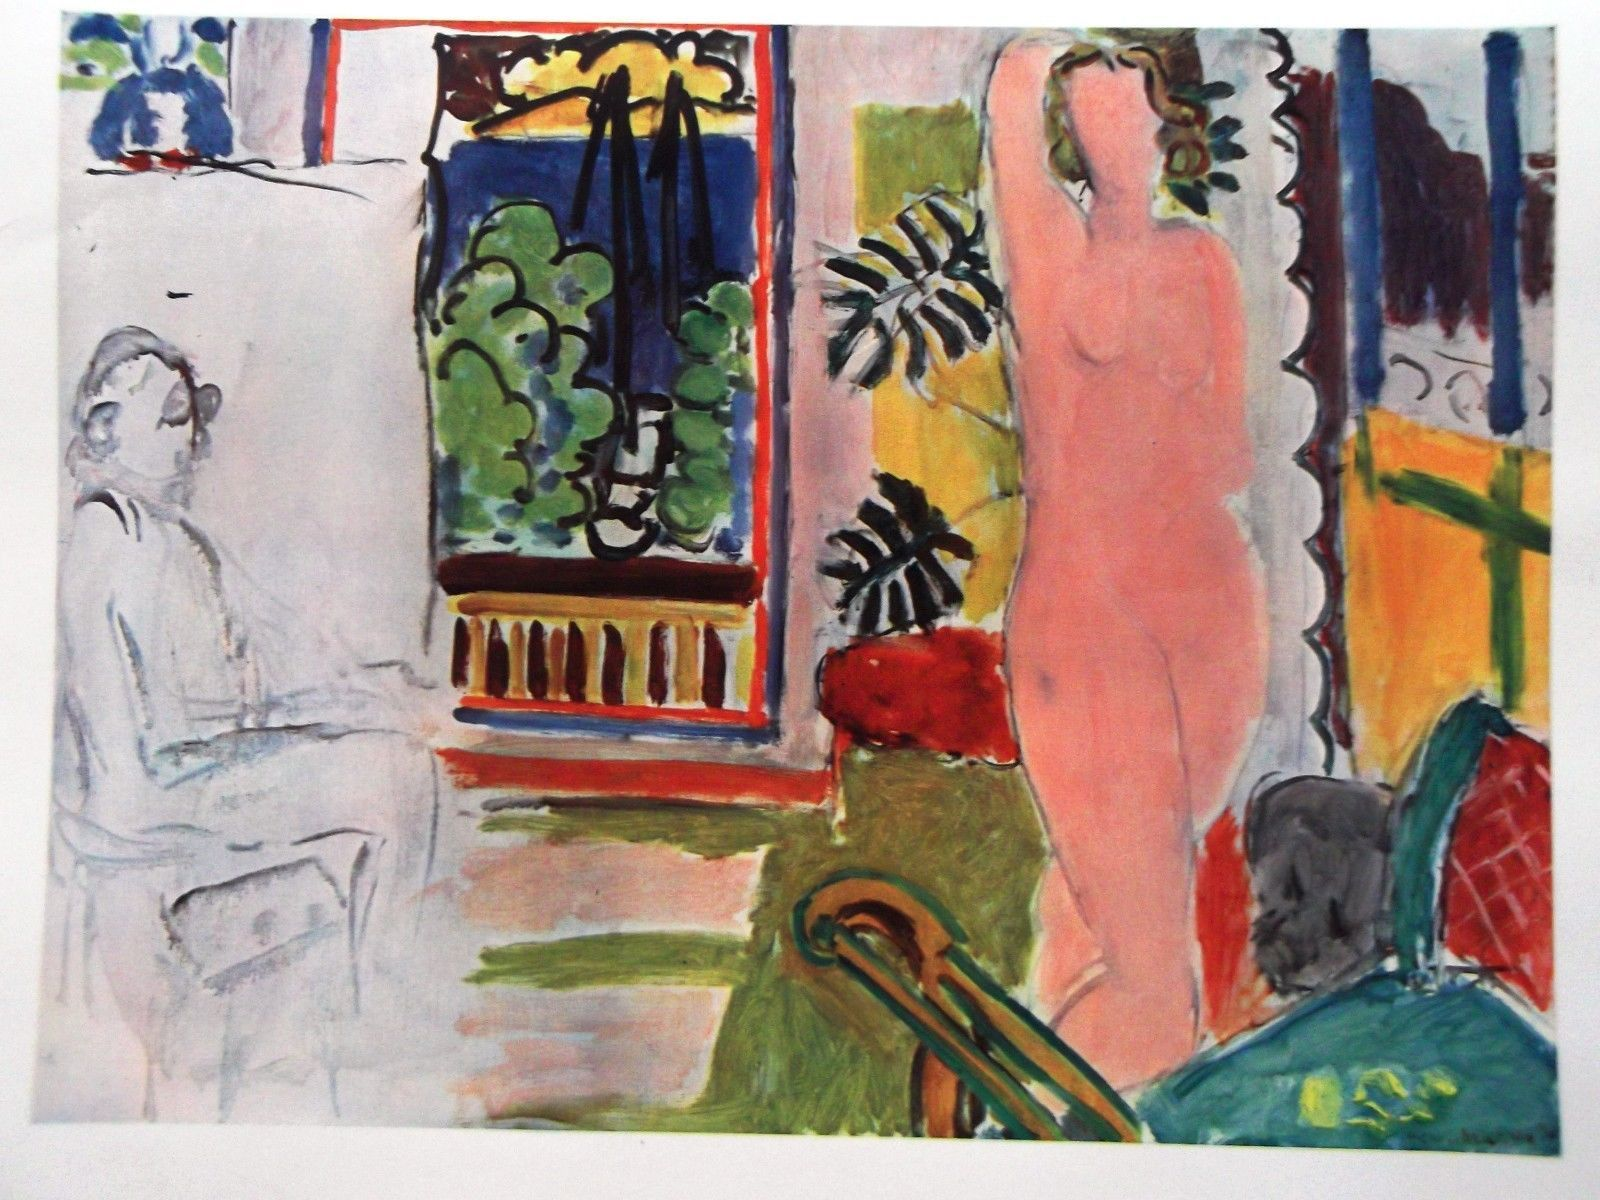 HENRI MATISSE SIGNED 1939 LITHOGRAPH + COA. £ INCREDIBLE YET AFFORDABLE RARE ART